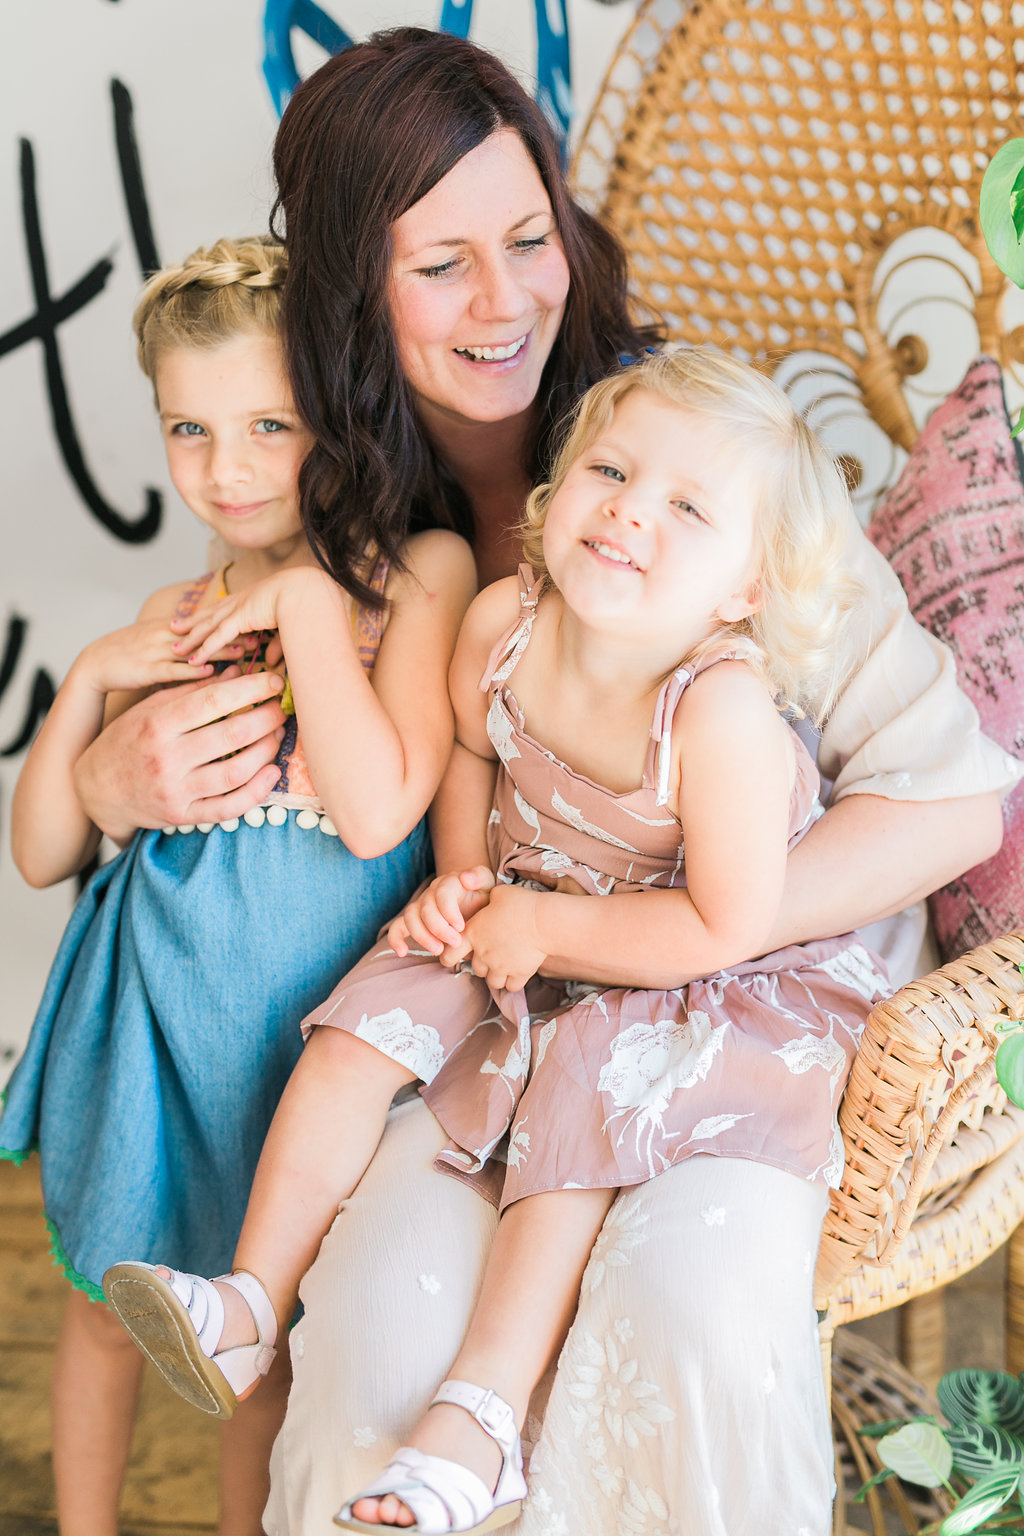 This is Meagan Vos, the face behind the stunning floral design at   MV Florals  .  Niki actually introduced us and she's been our lead florist at Forrest and J from the begining! We admire Meagan's kind heart and sweet energy.  She's the most encouraging WoMom we know. Pictured with Sadie and Summer.